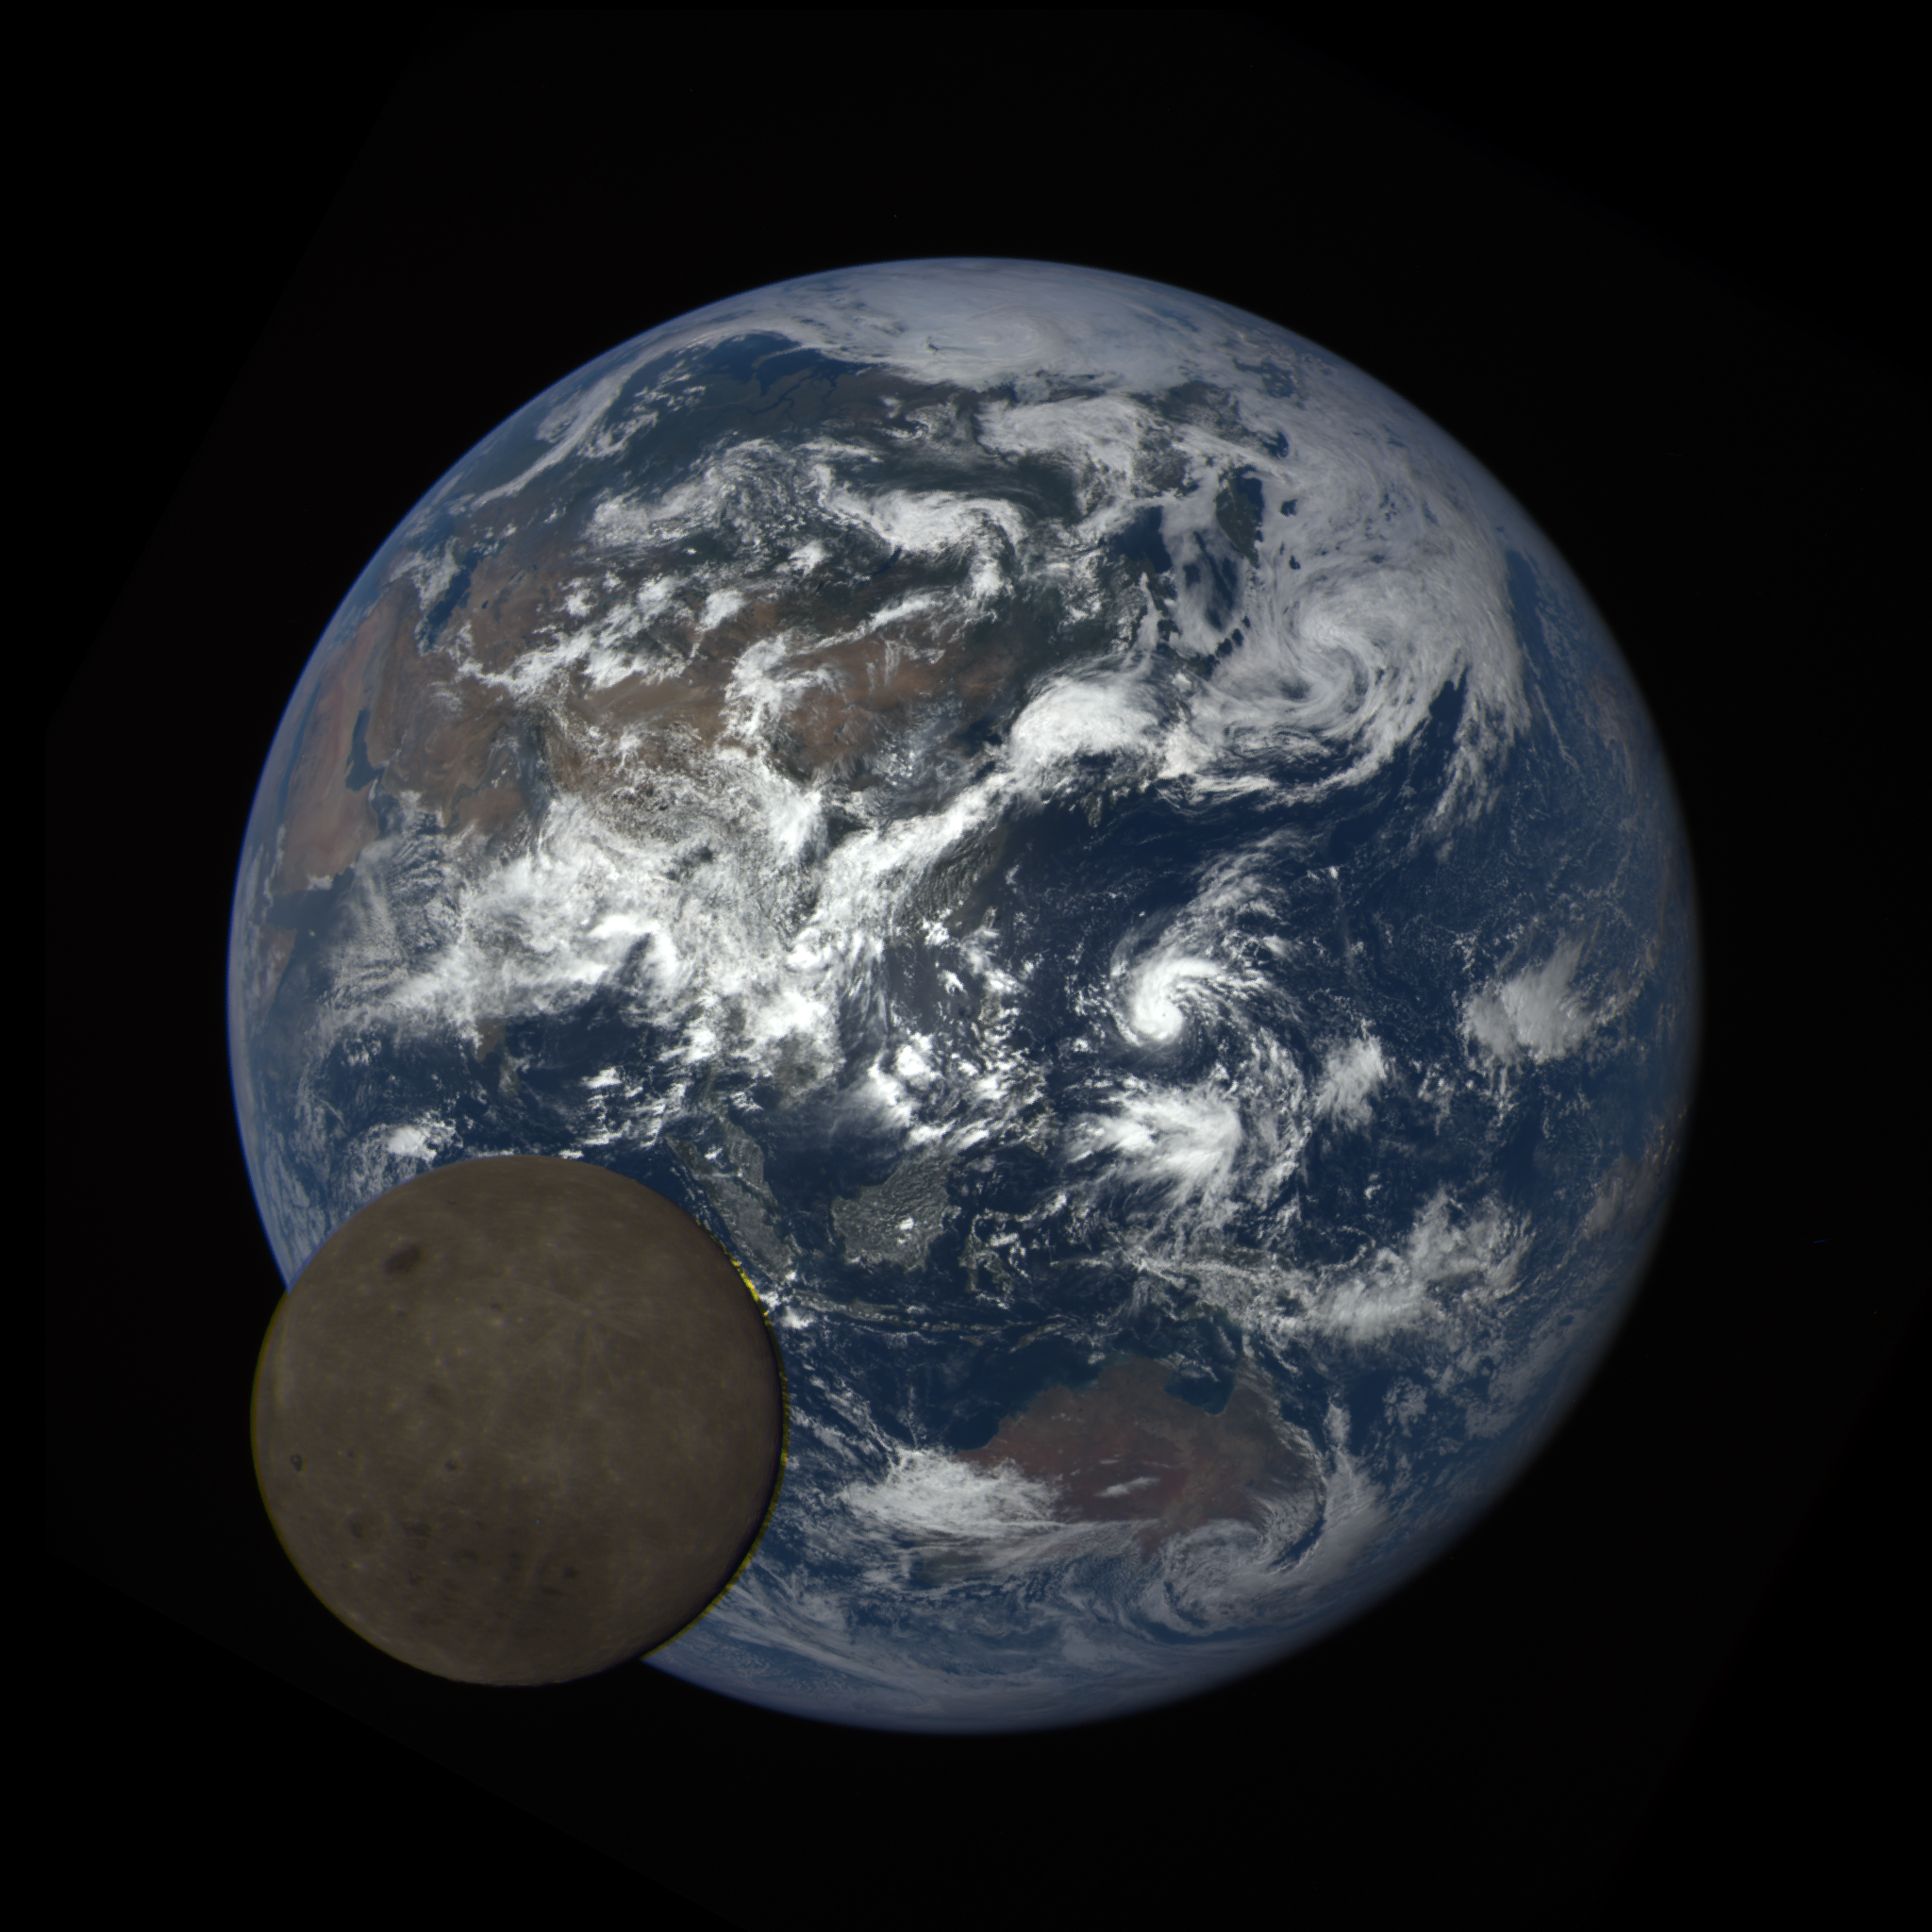 Far side of the moon as it transits Earth from DSCOVR's perspective